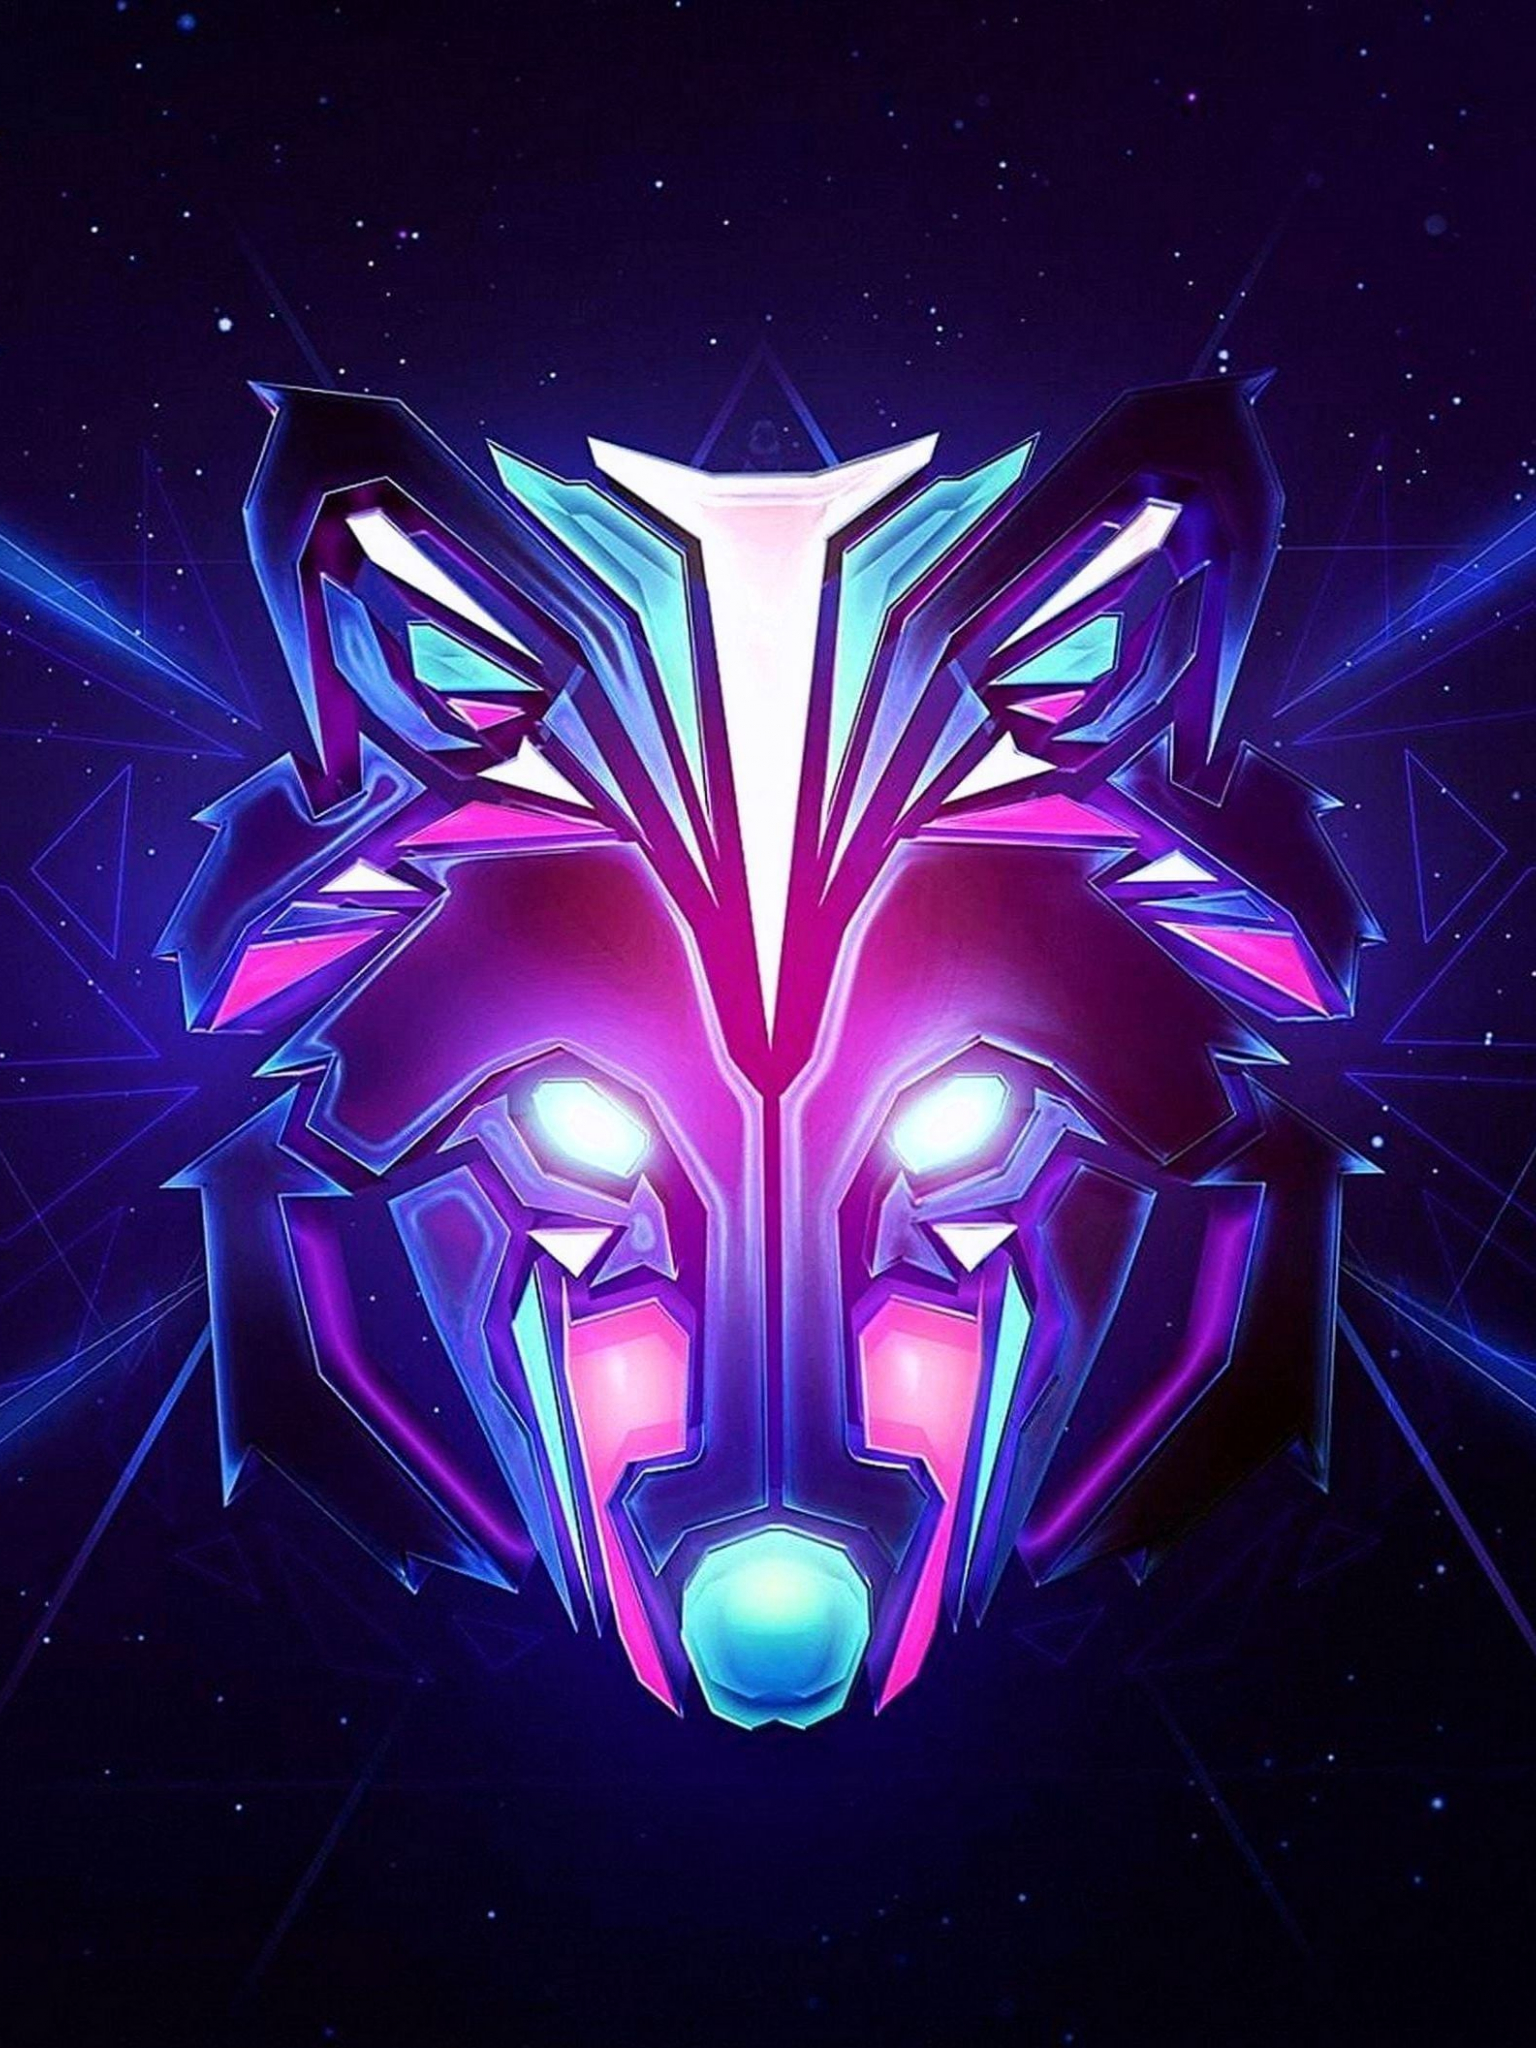 Free Download Gamingwolfs In 2020 Wolf Wallpaper 2048x1152 Wallpapers Gaming 3758x2113 For Your Desktop Mobile Tablet Explore 27 Gamer Backgrounds Gamer Wallpapers Gamer Wallpaper Gamer Wallpaper Hd